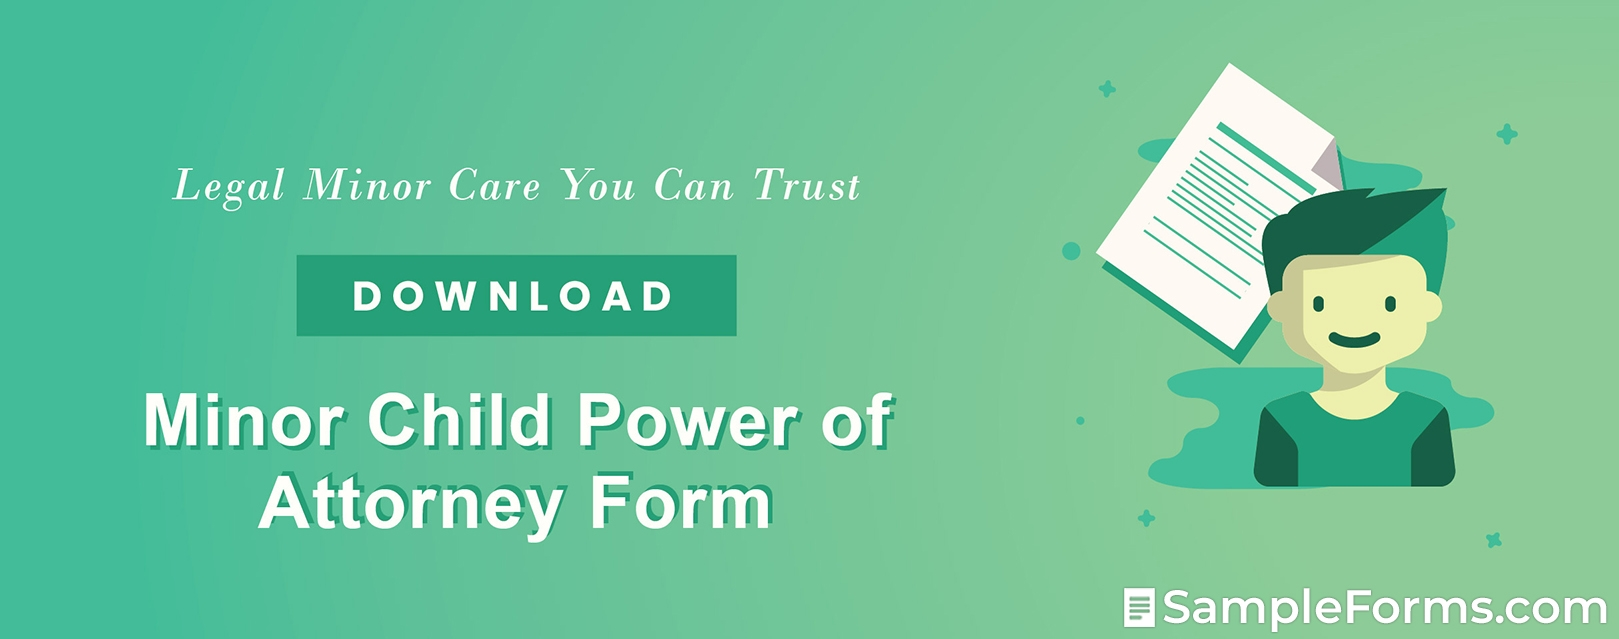 Minor Child Power of Attorney Form